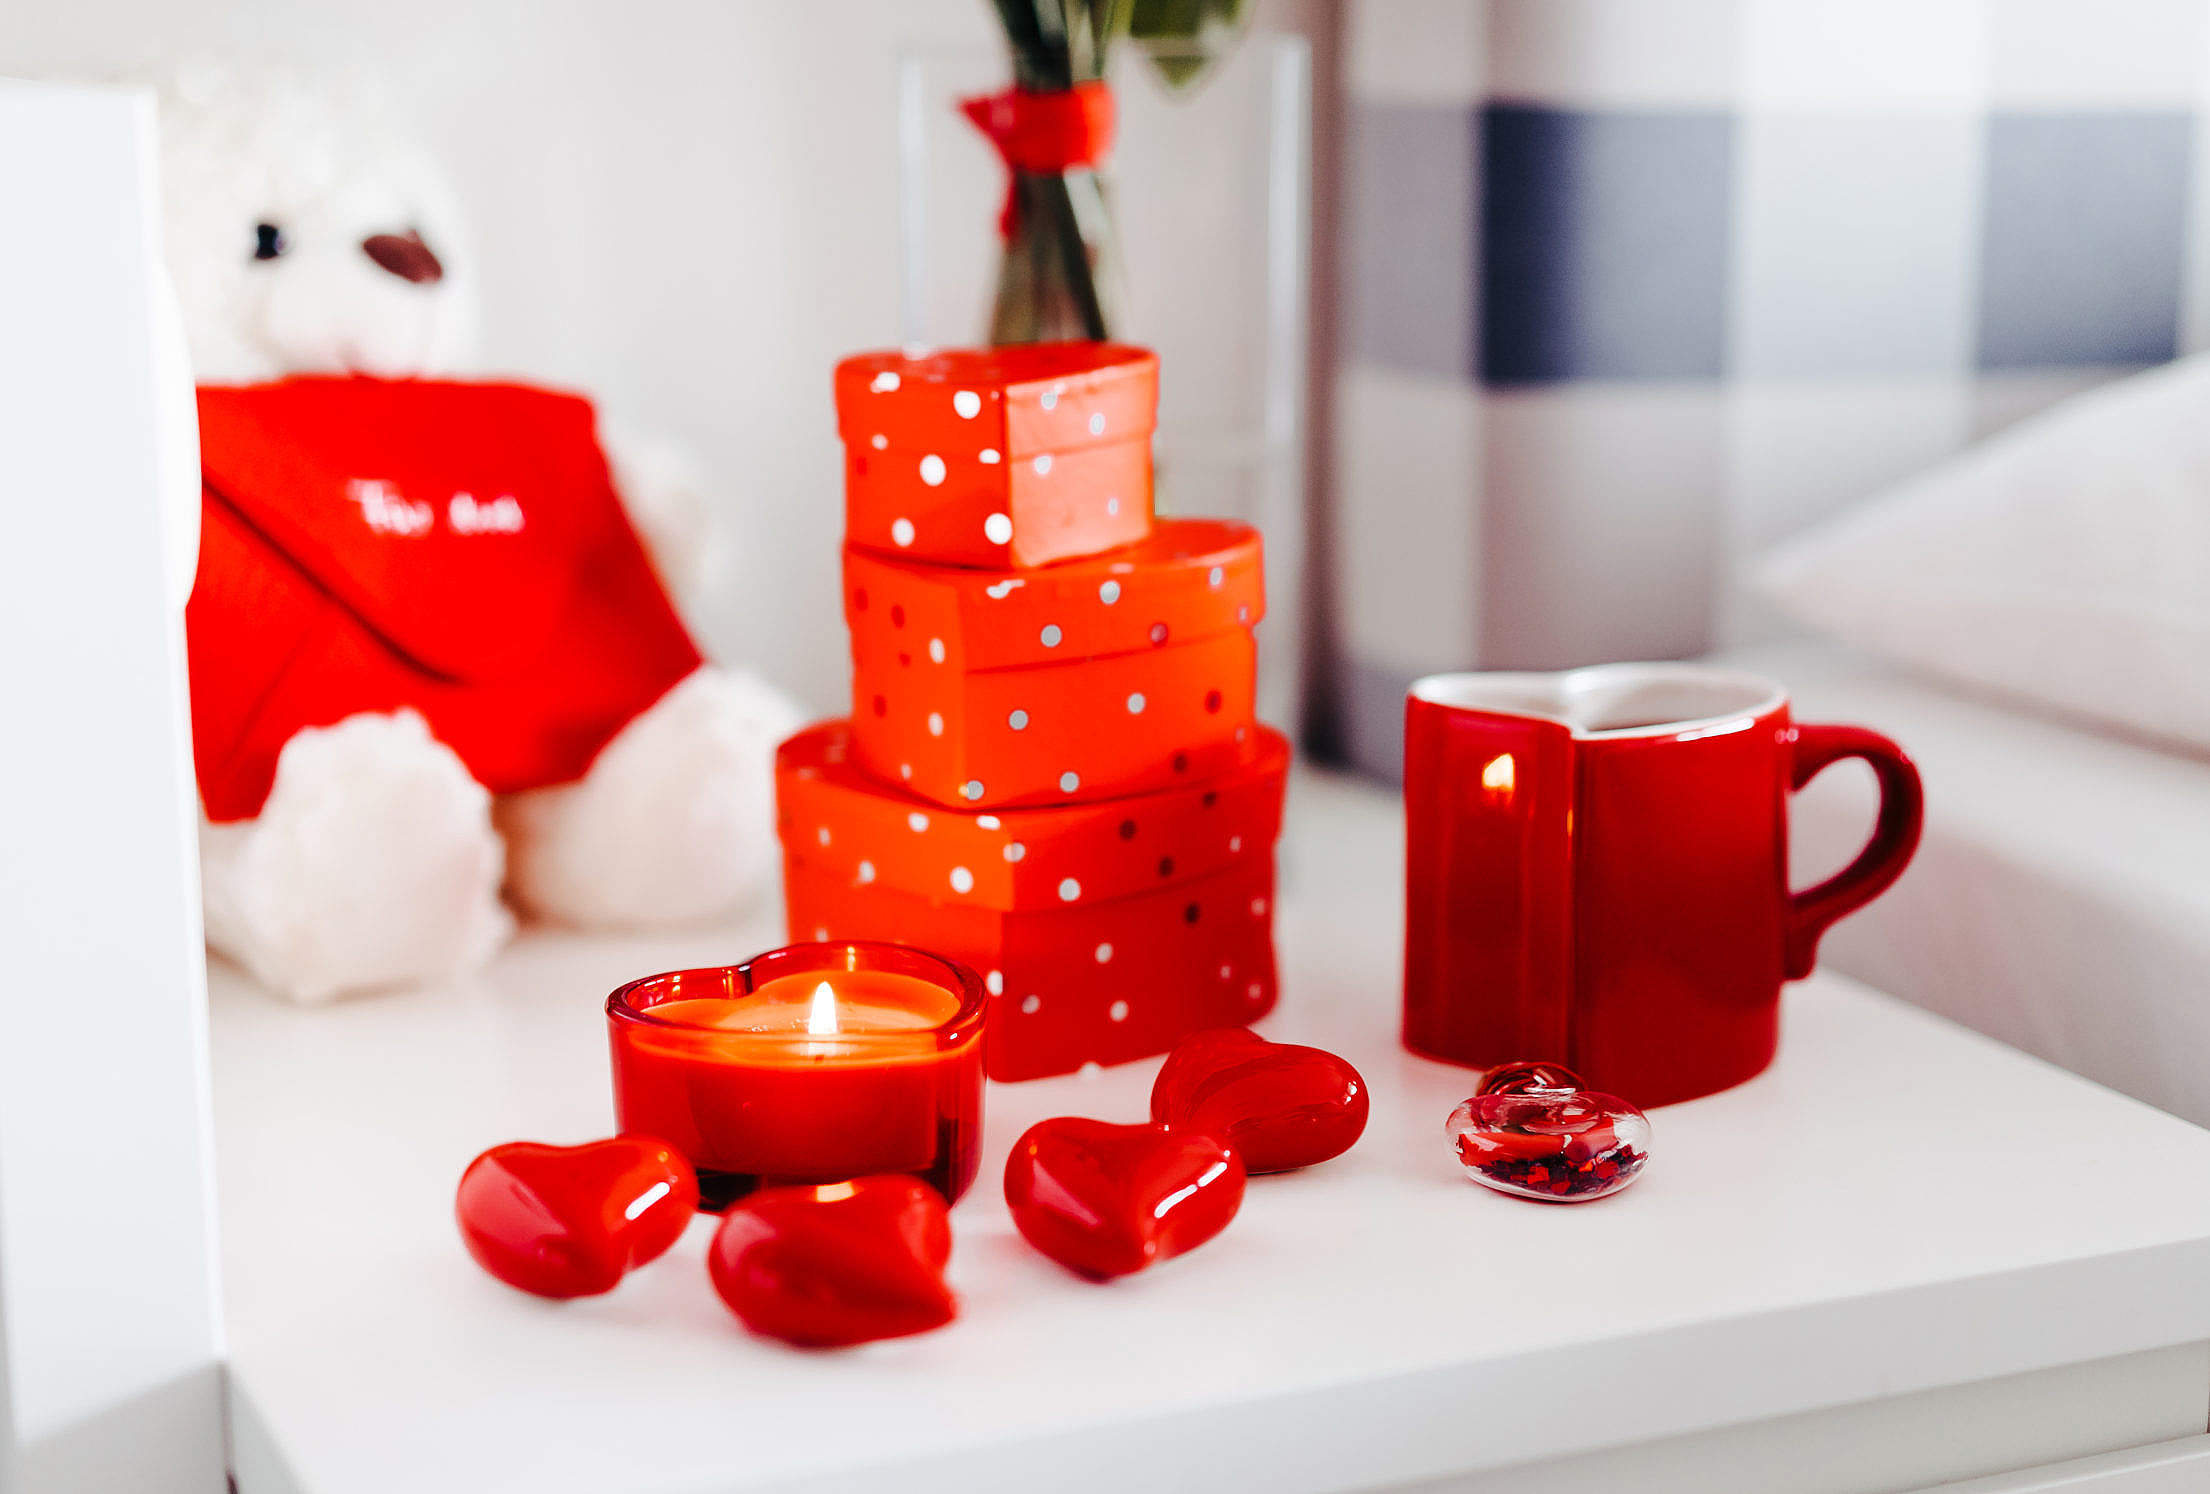 Beautiful Valentine's Day Morning Gifts Free Stock Photo